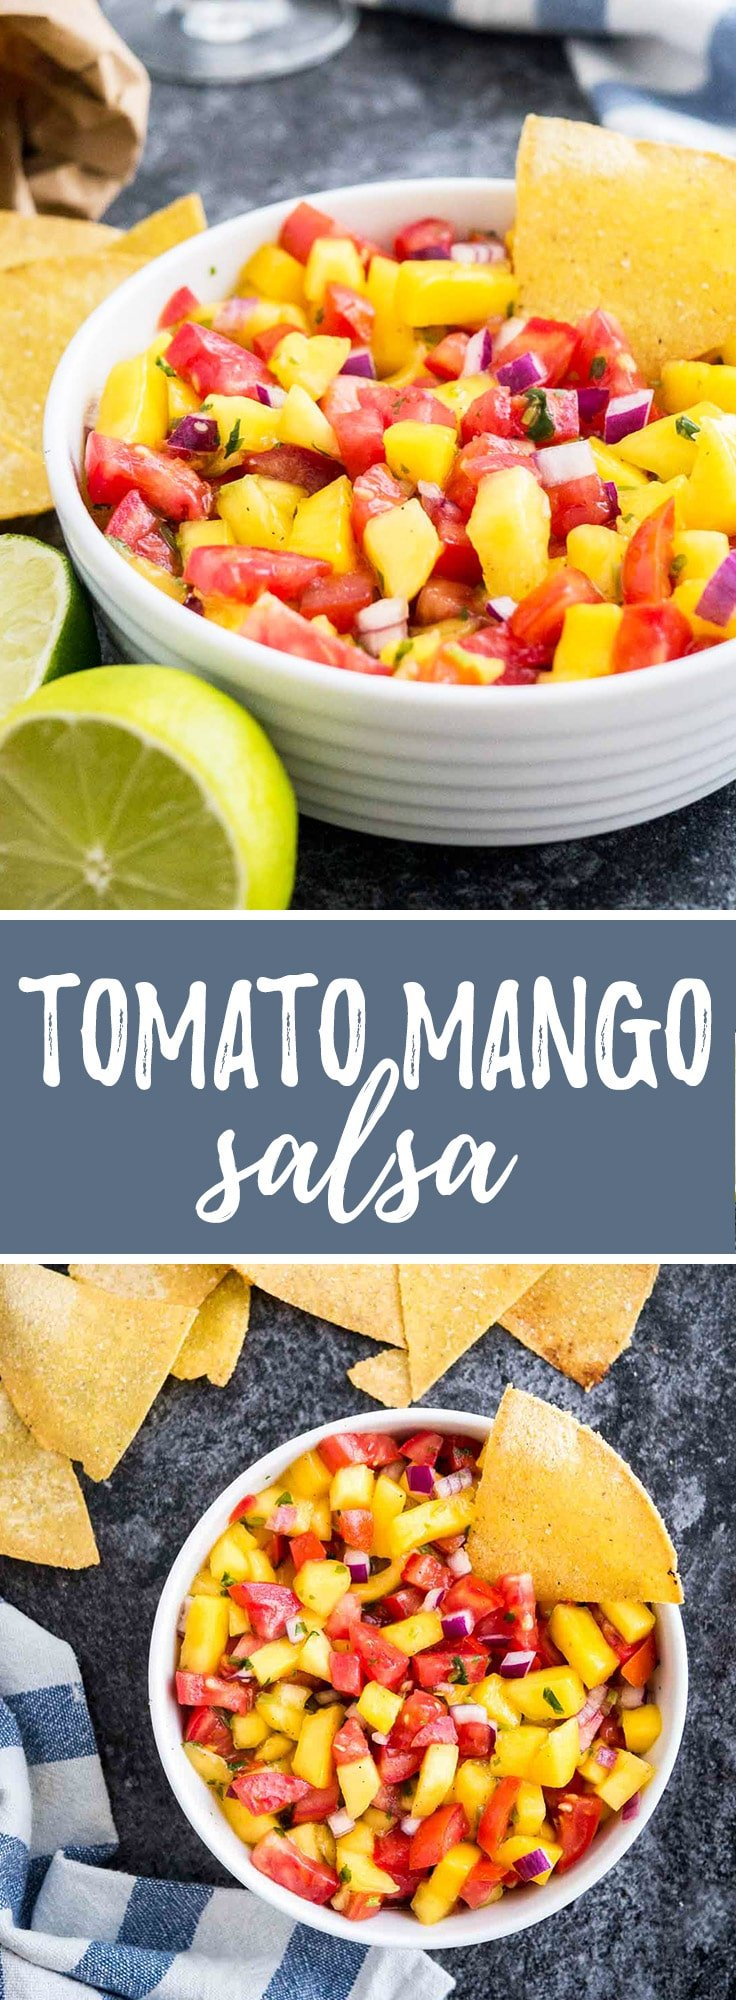 Tomato Mango Salsa is sweet, tangy, and slightly spicy! A simple and colorful recipe that is perfect for summer entertaining.